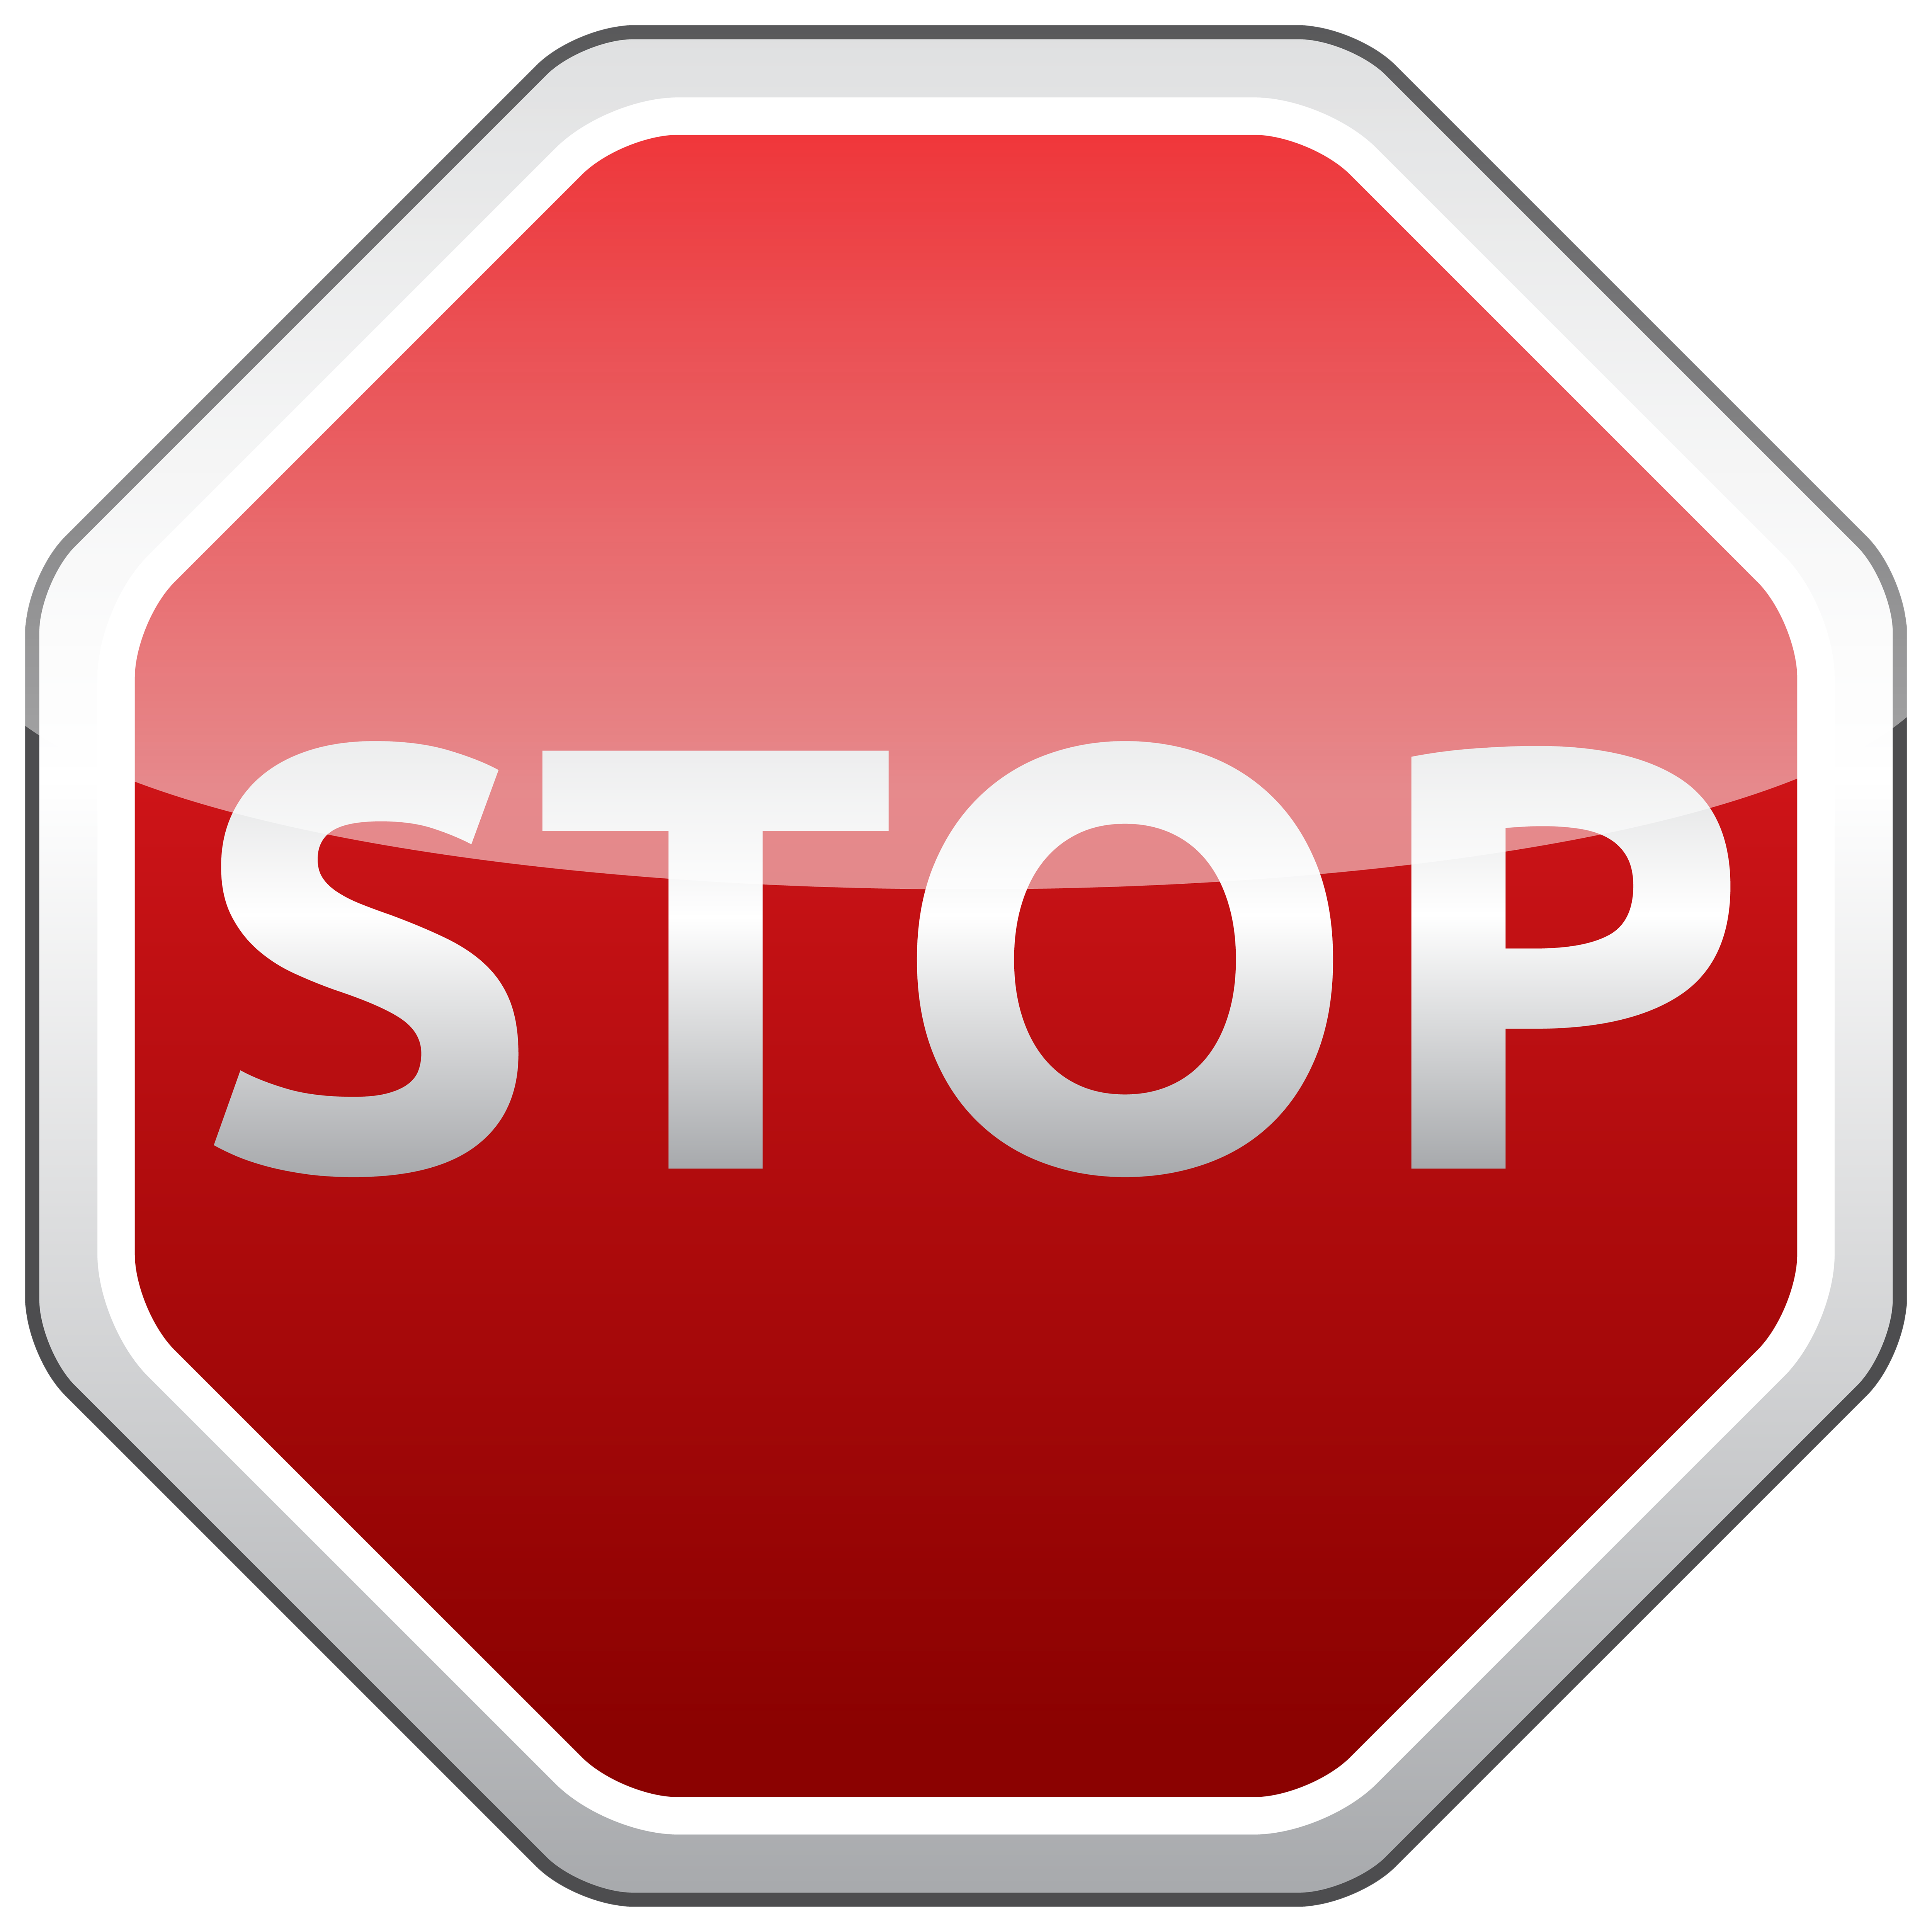 Stop clipart. Sign png best web